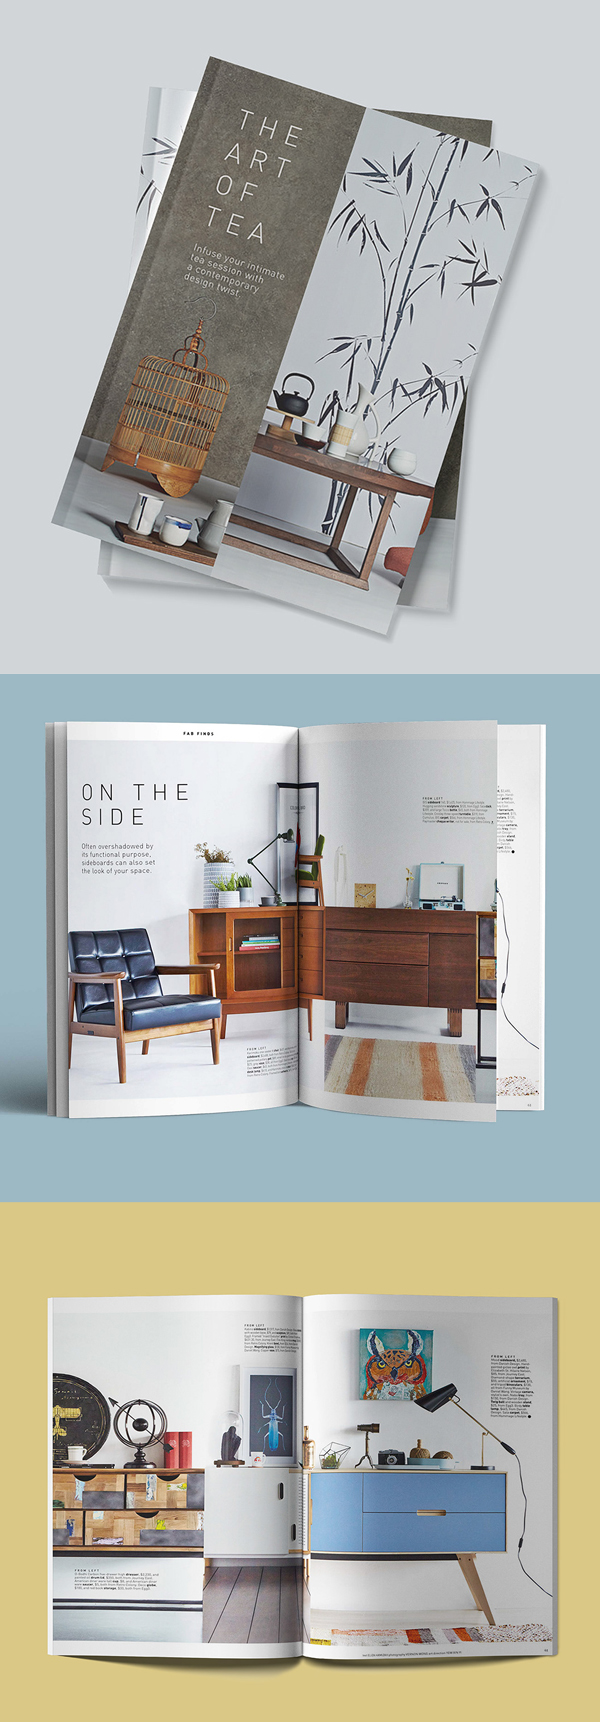 Free Book (Cover, Open, Side) PSD Mockups Free Font